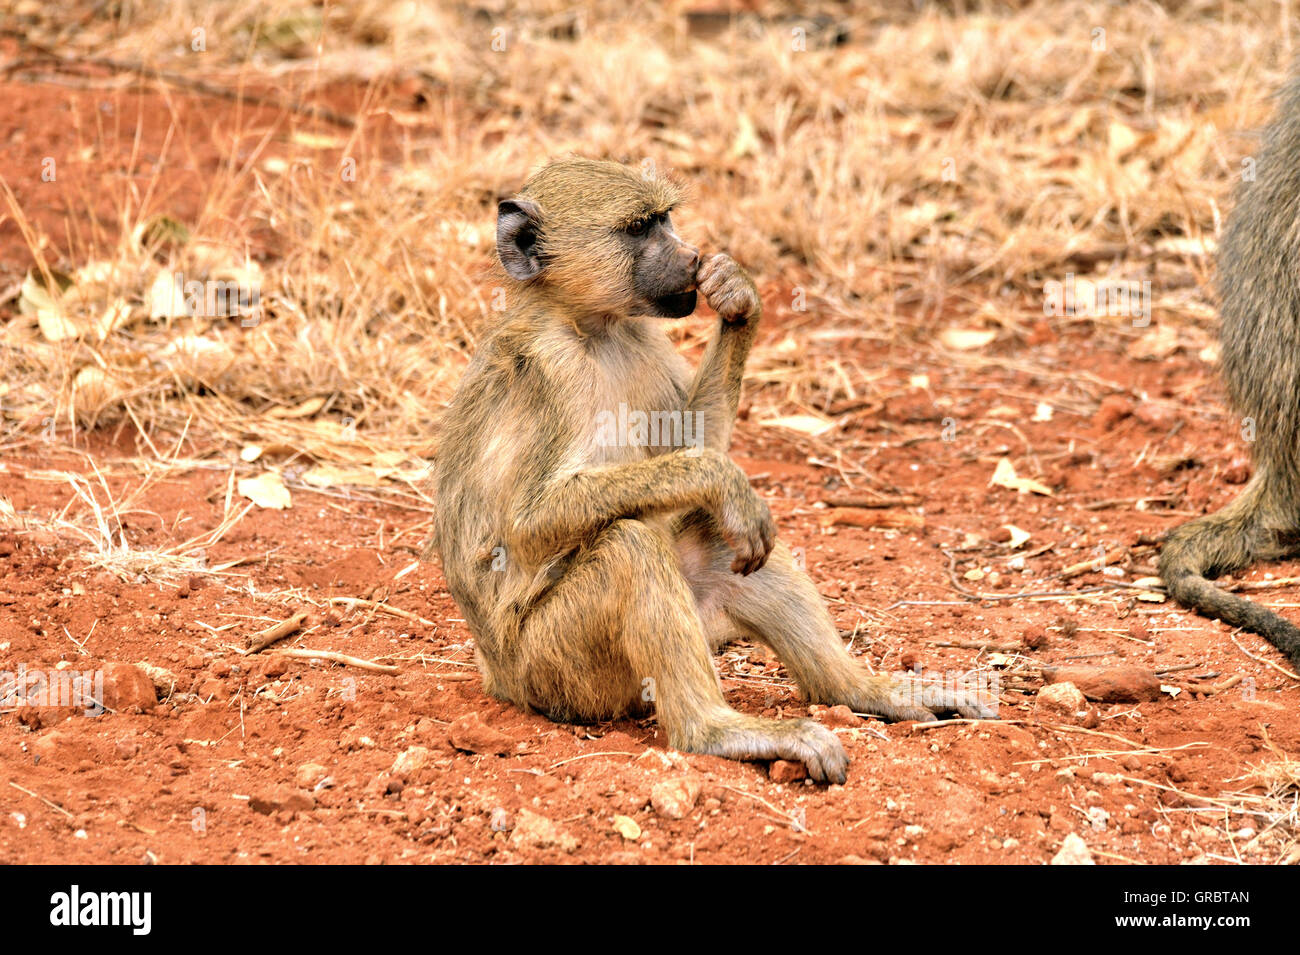 Yellow Baboon Looks Bored And Musing - Stock Image